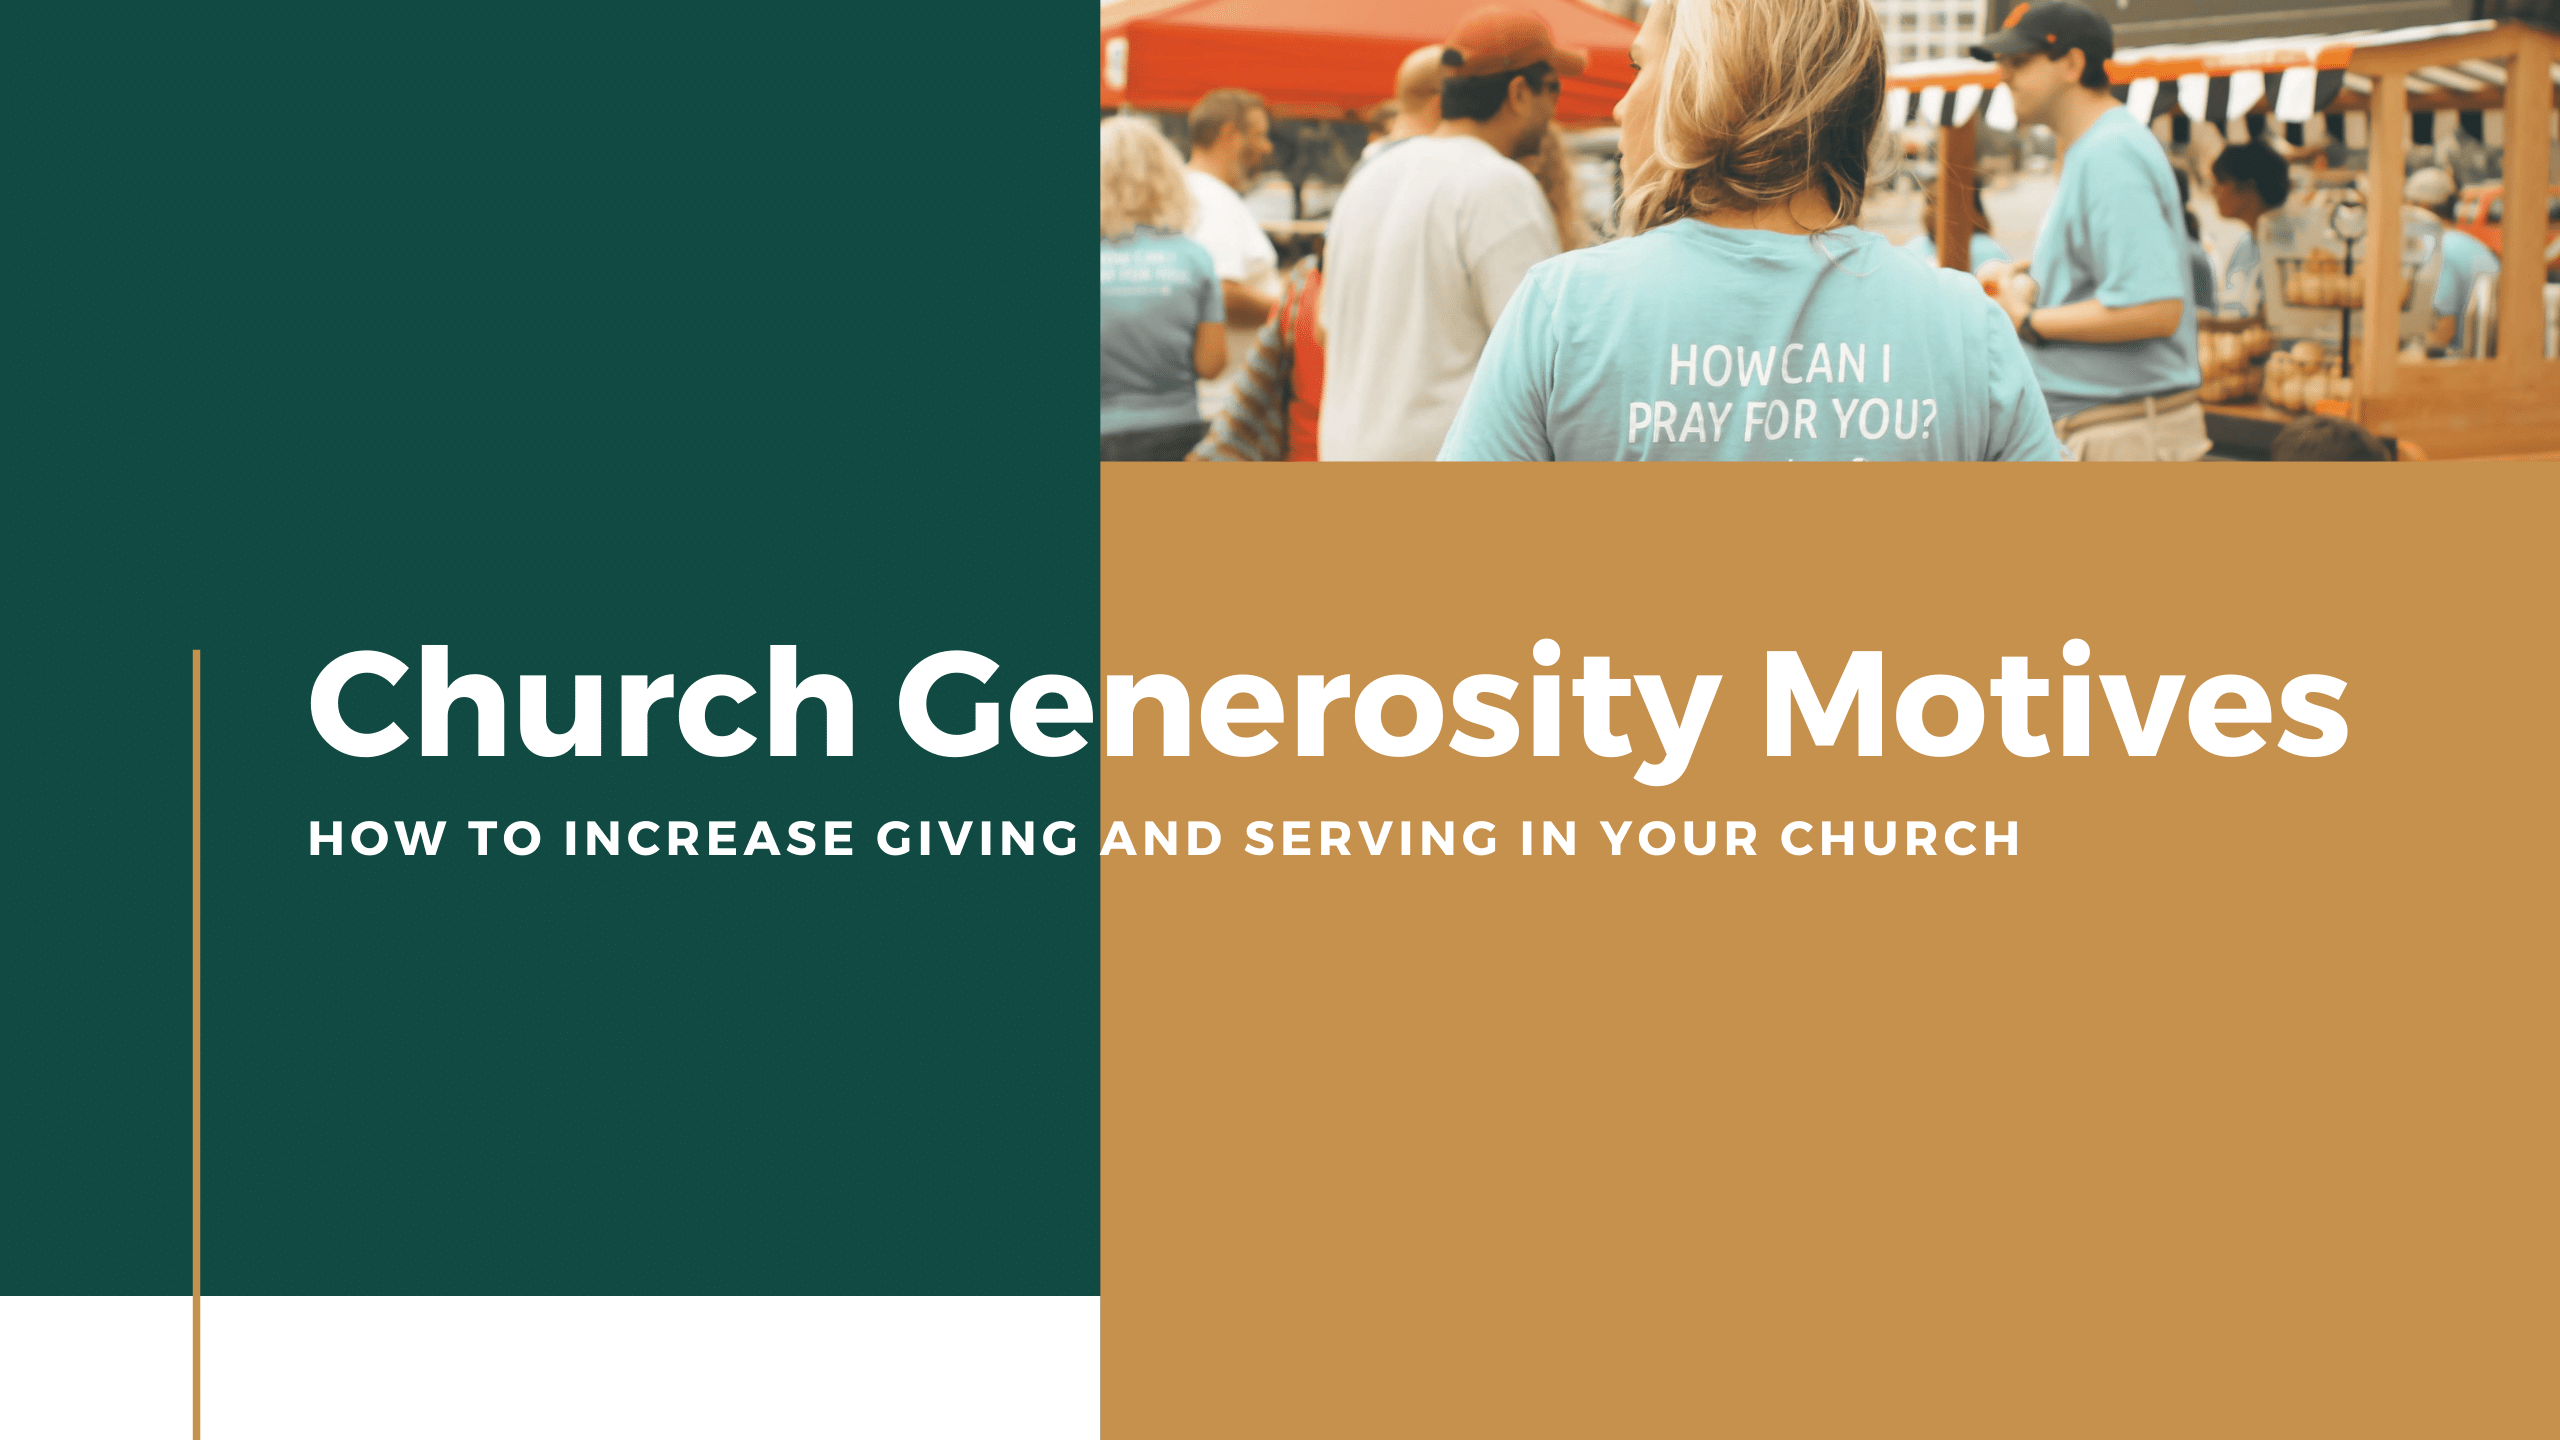 church-generosity-motives-how-to-increase-giving-and-serving